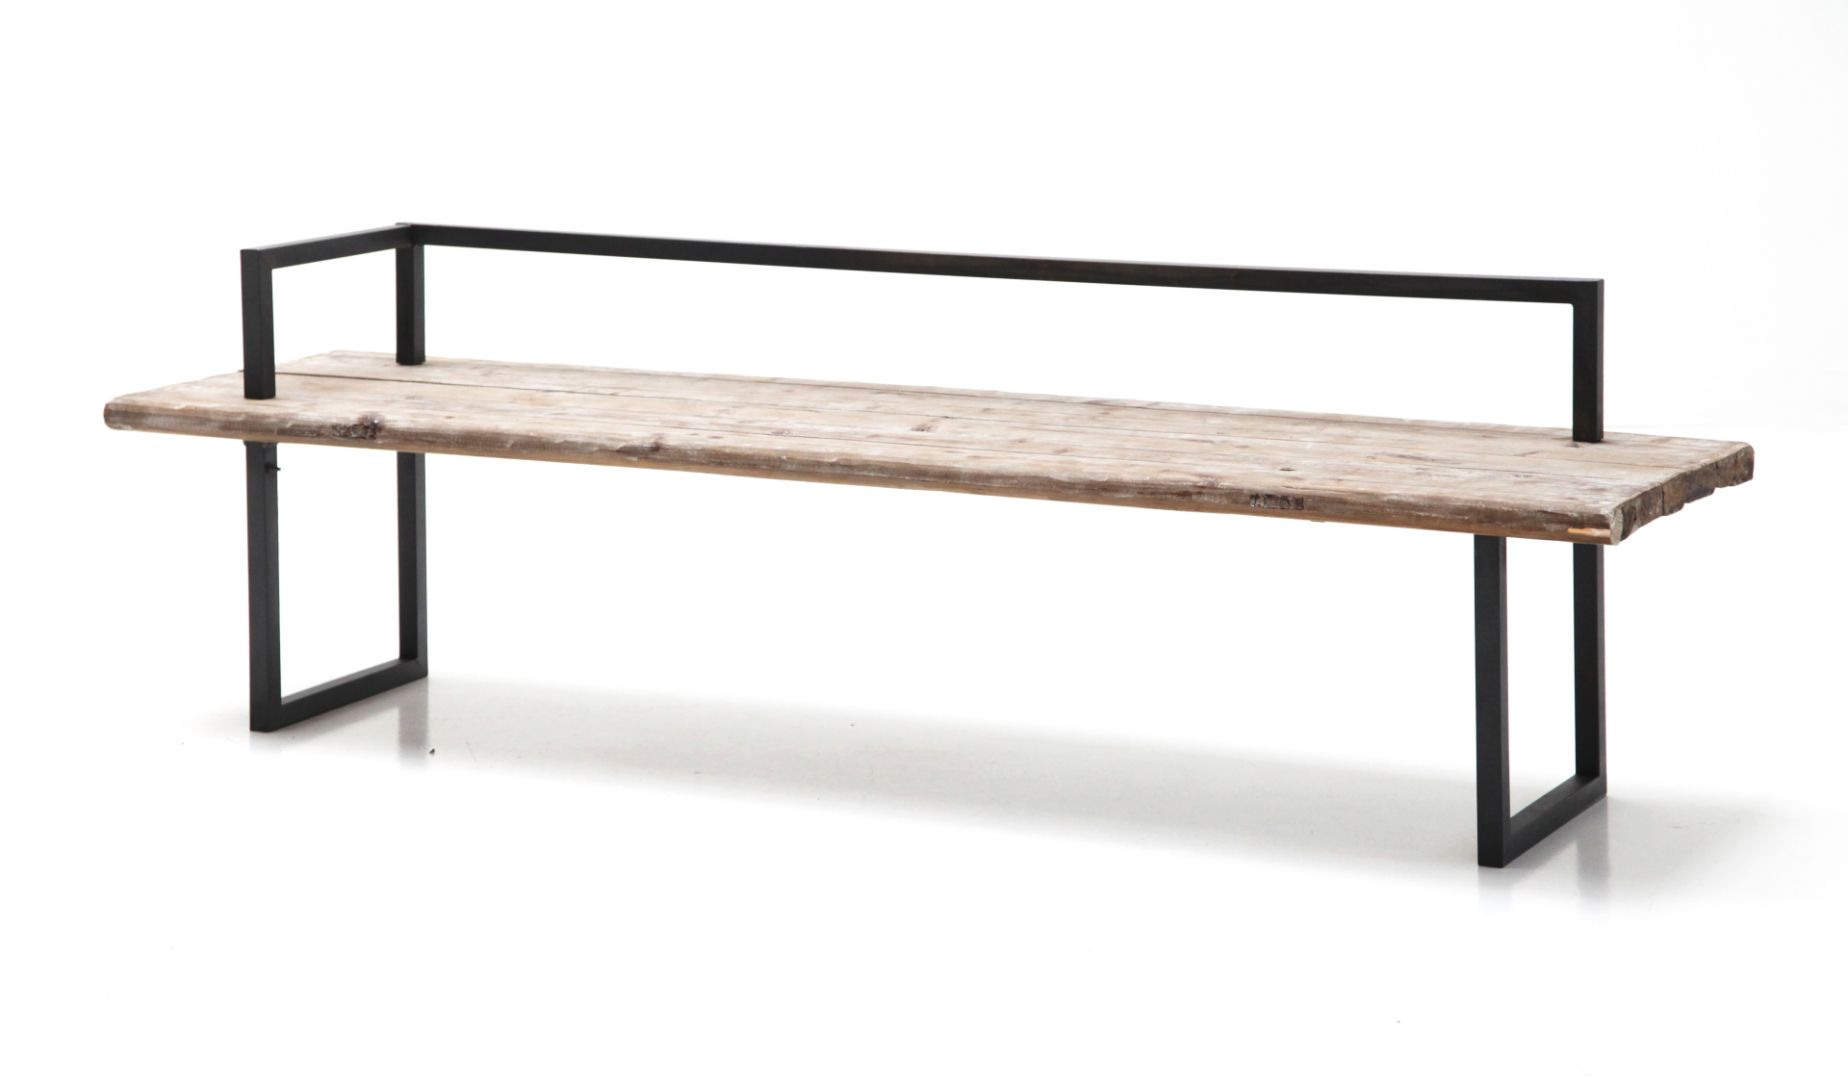 Wood And Iron Bench | Perch Decor | Iron Bench, Bench Within Ossu Iron Picnic Benches (View 7 of 25)